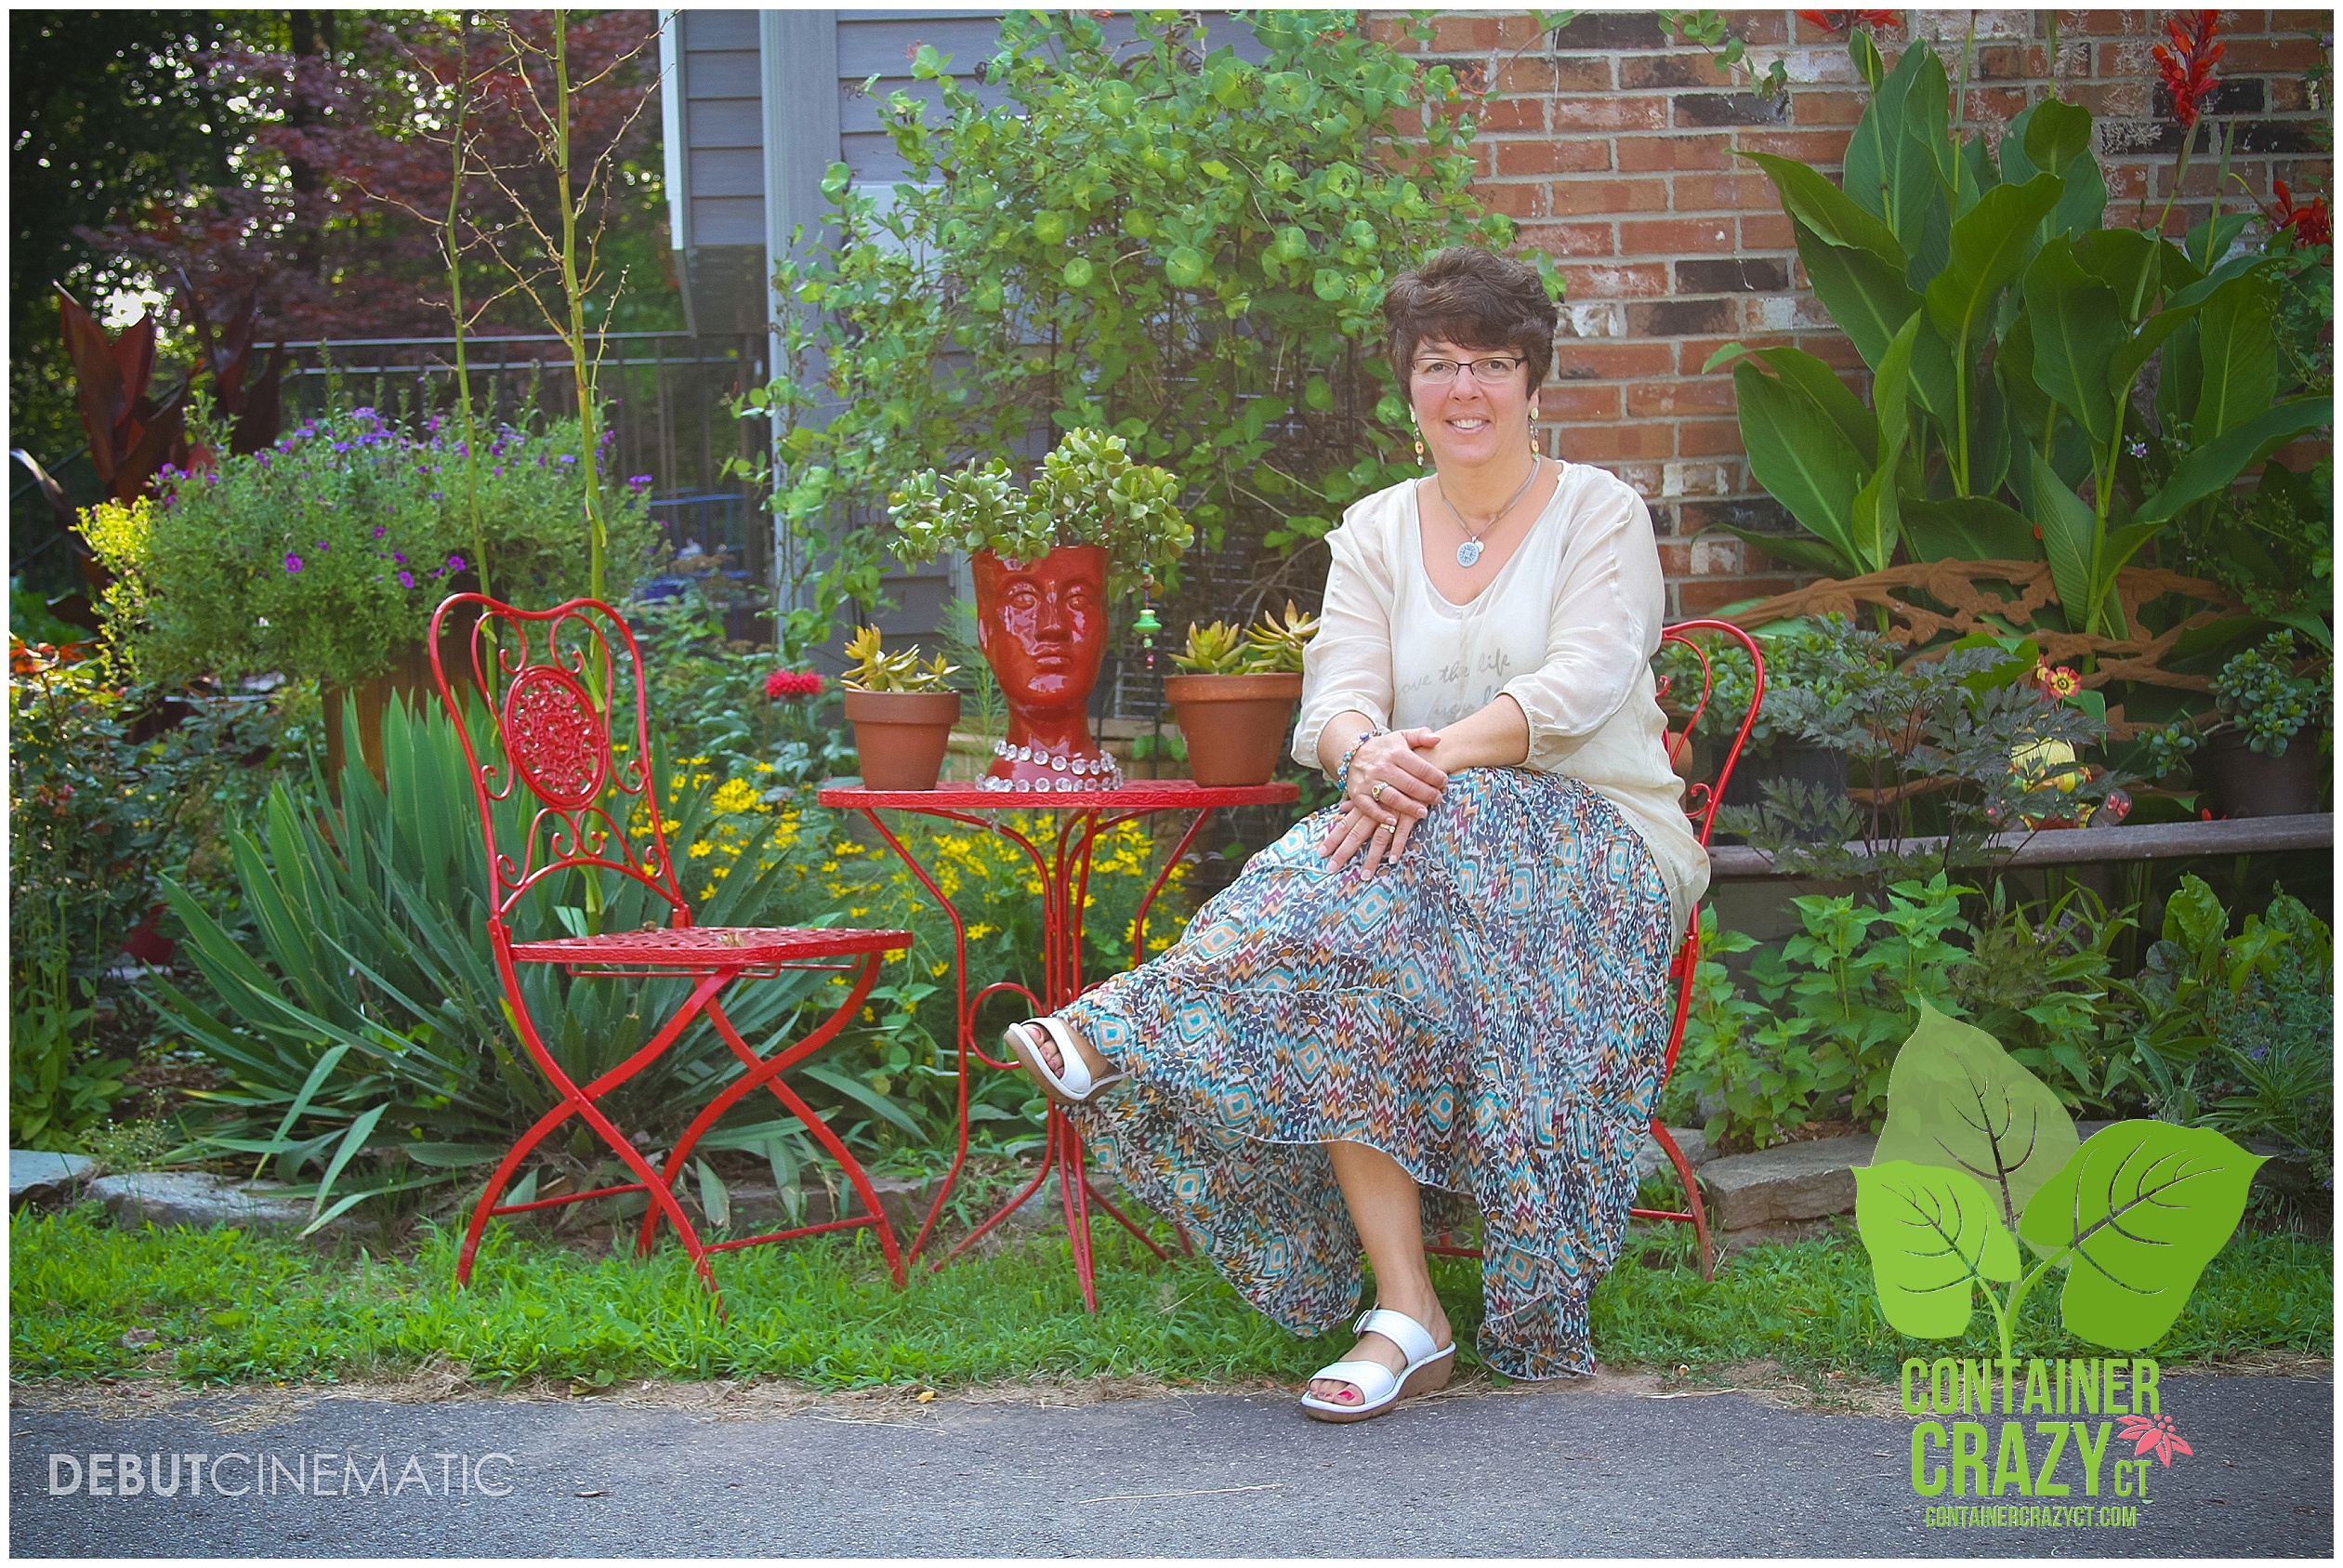 Cathy T at her home in East Windsor, CT